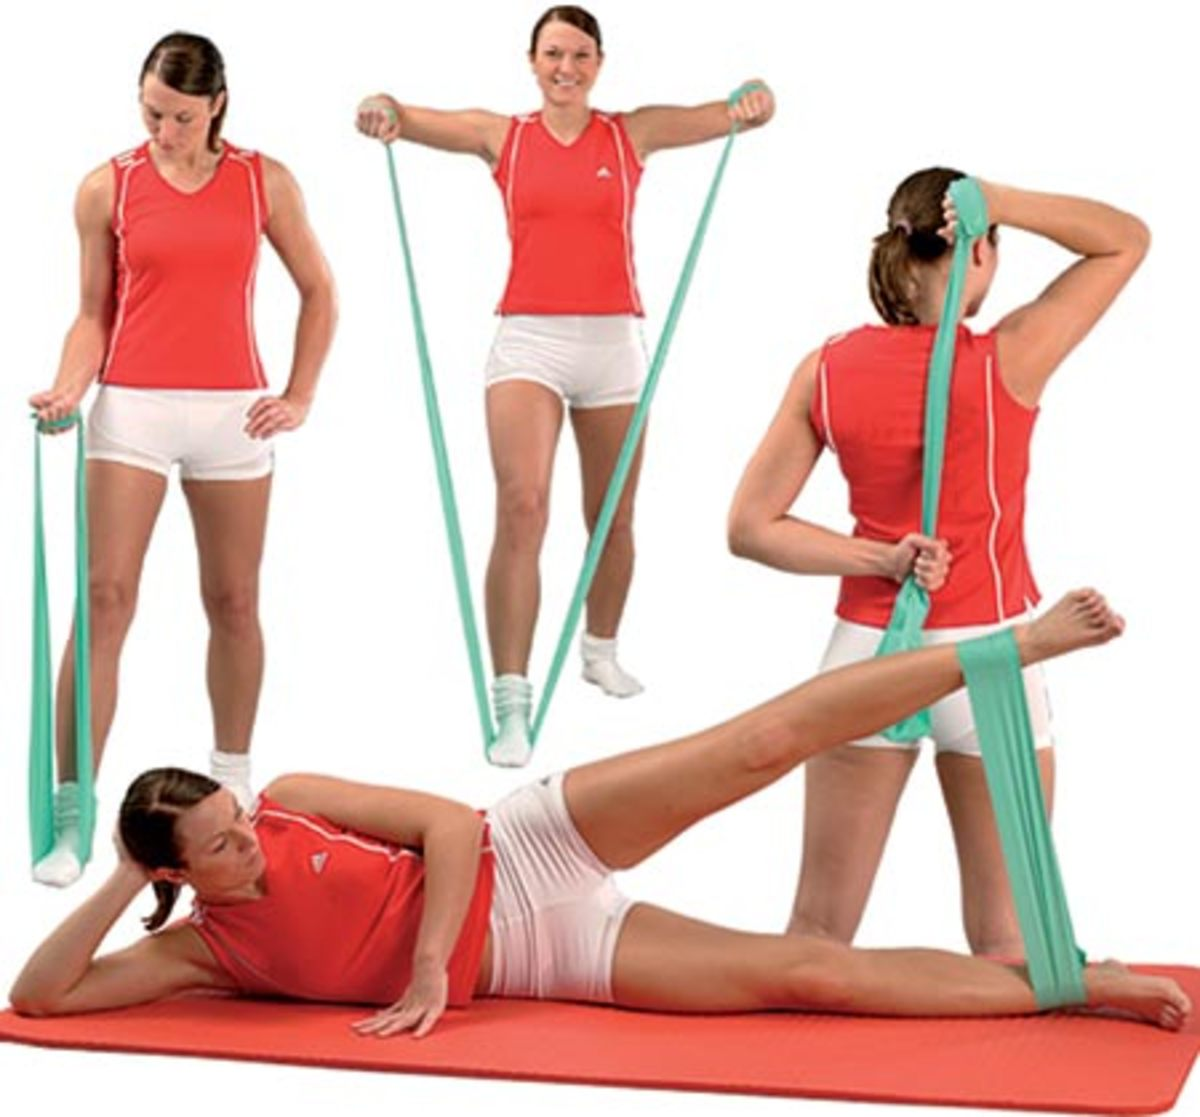 Four Resistance Band Movements - Woman in Orange and White Shorts